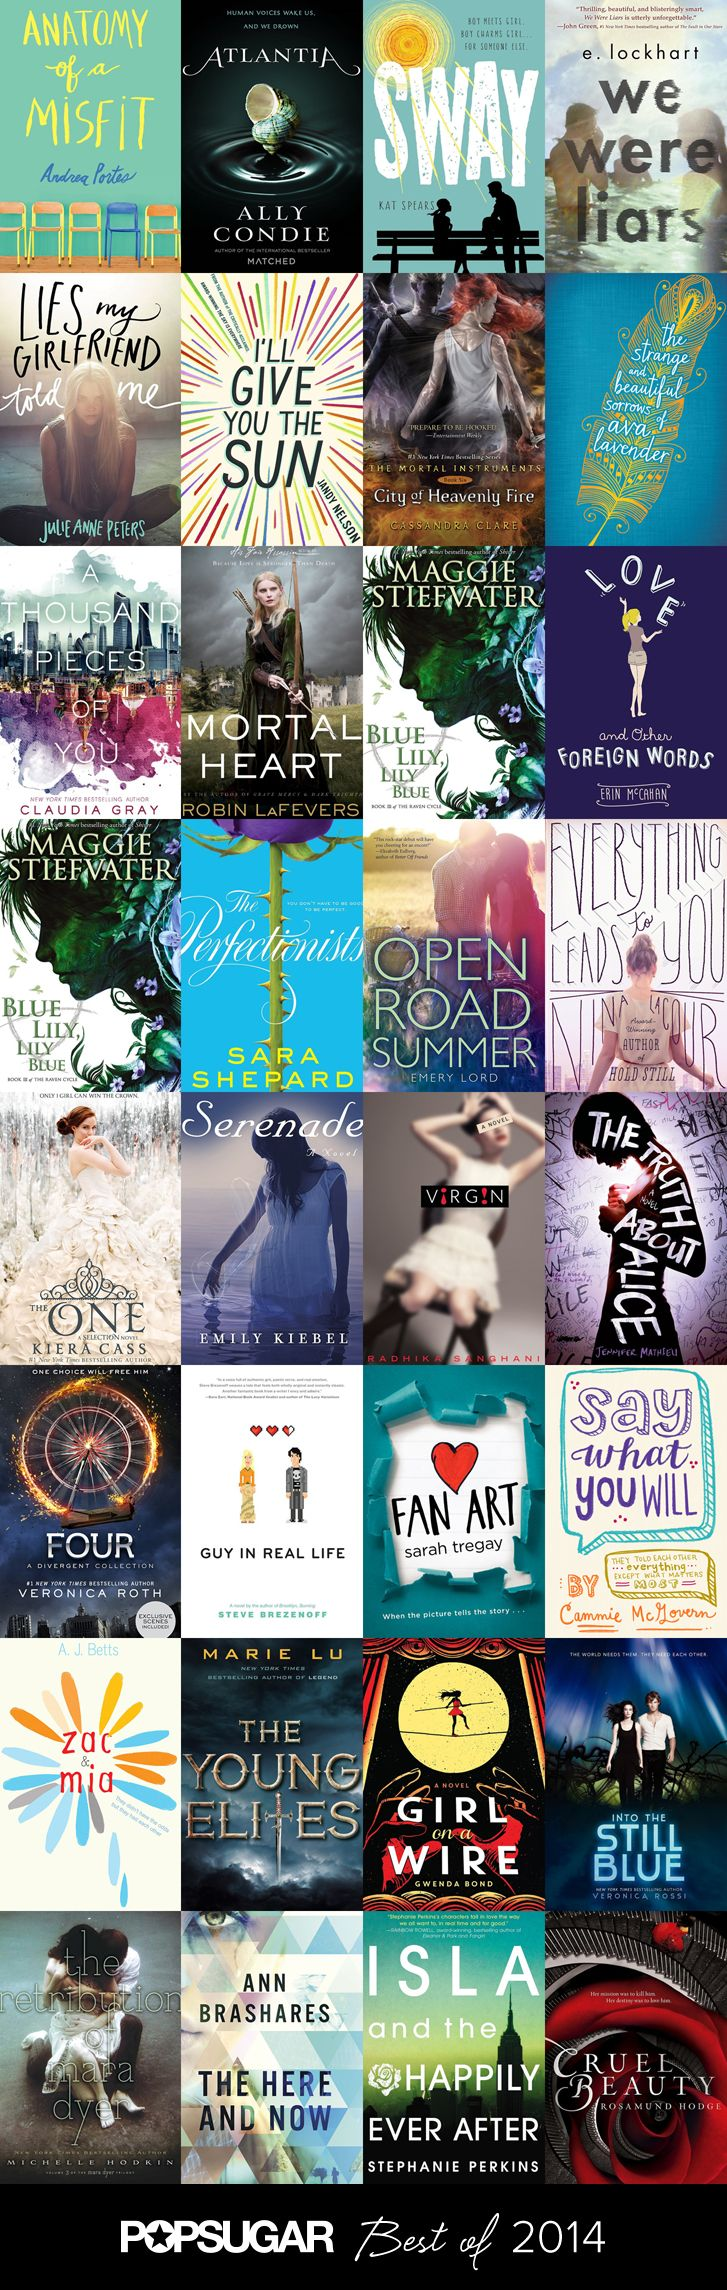 The Best YA Books of 2014. Ohmigosh ive read or want to read *almost* every one of these